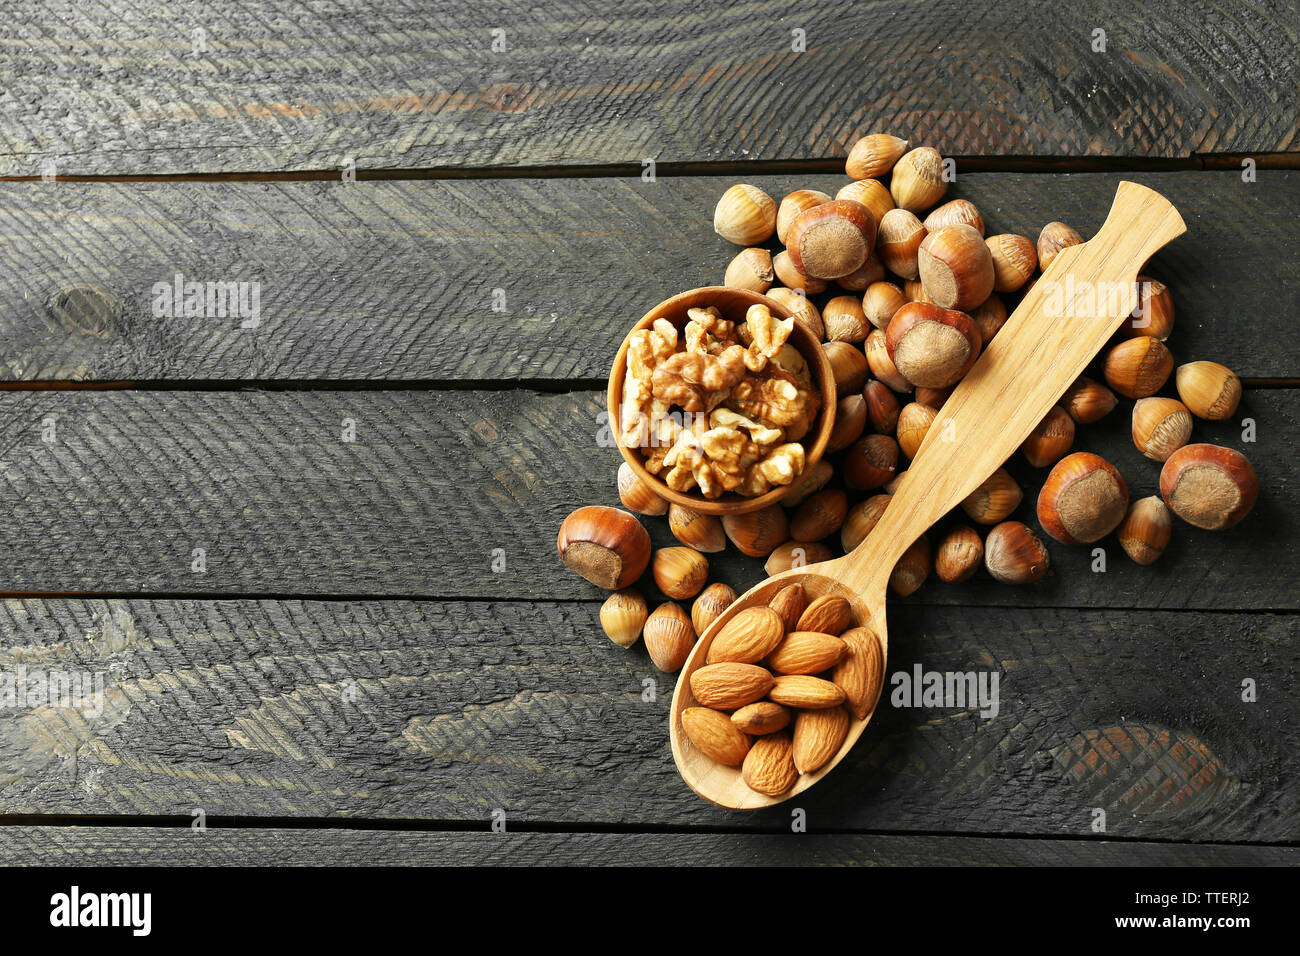 A wooden spoon, a bowl, hazelnuts, walnuts, almonds and acorns on the wooden table Stock Photo